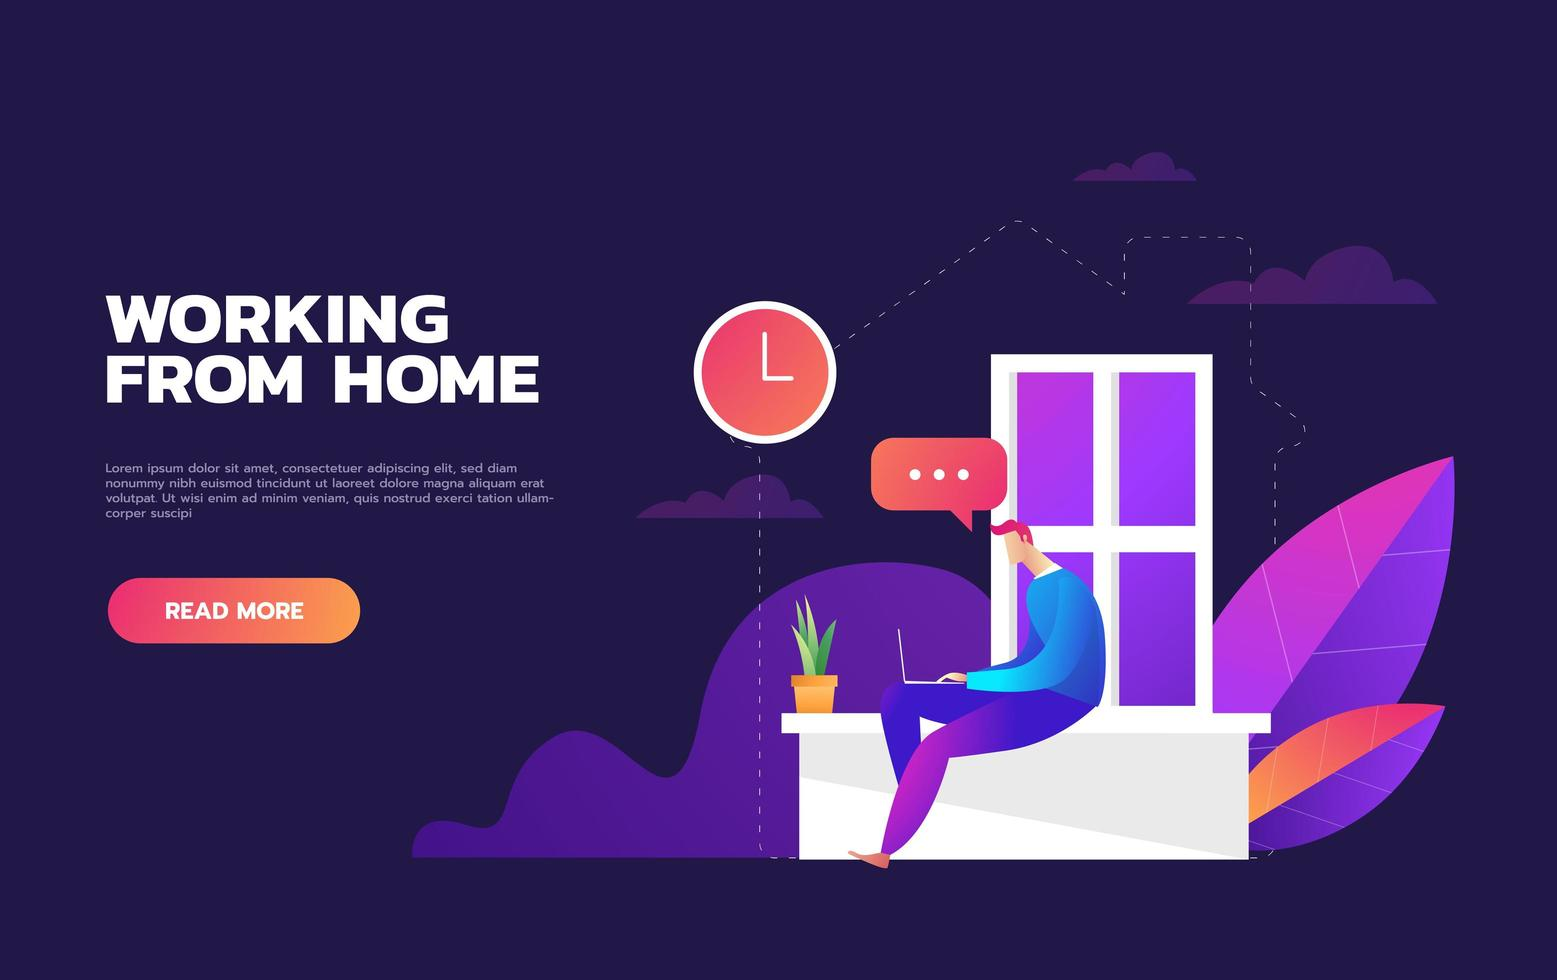 Working from home design vector